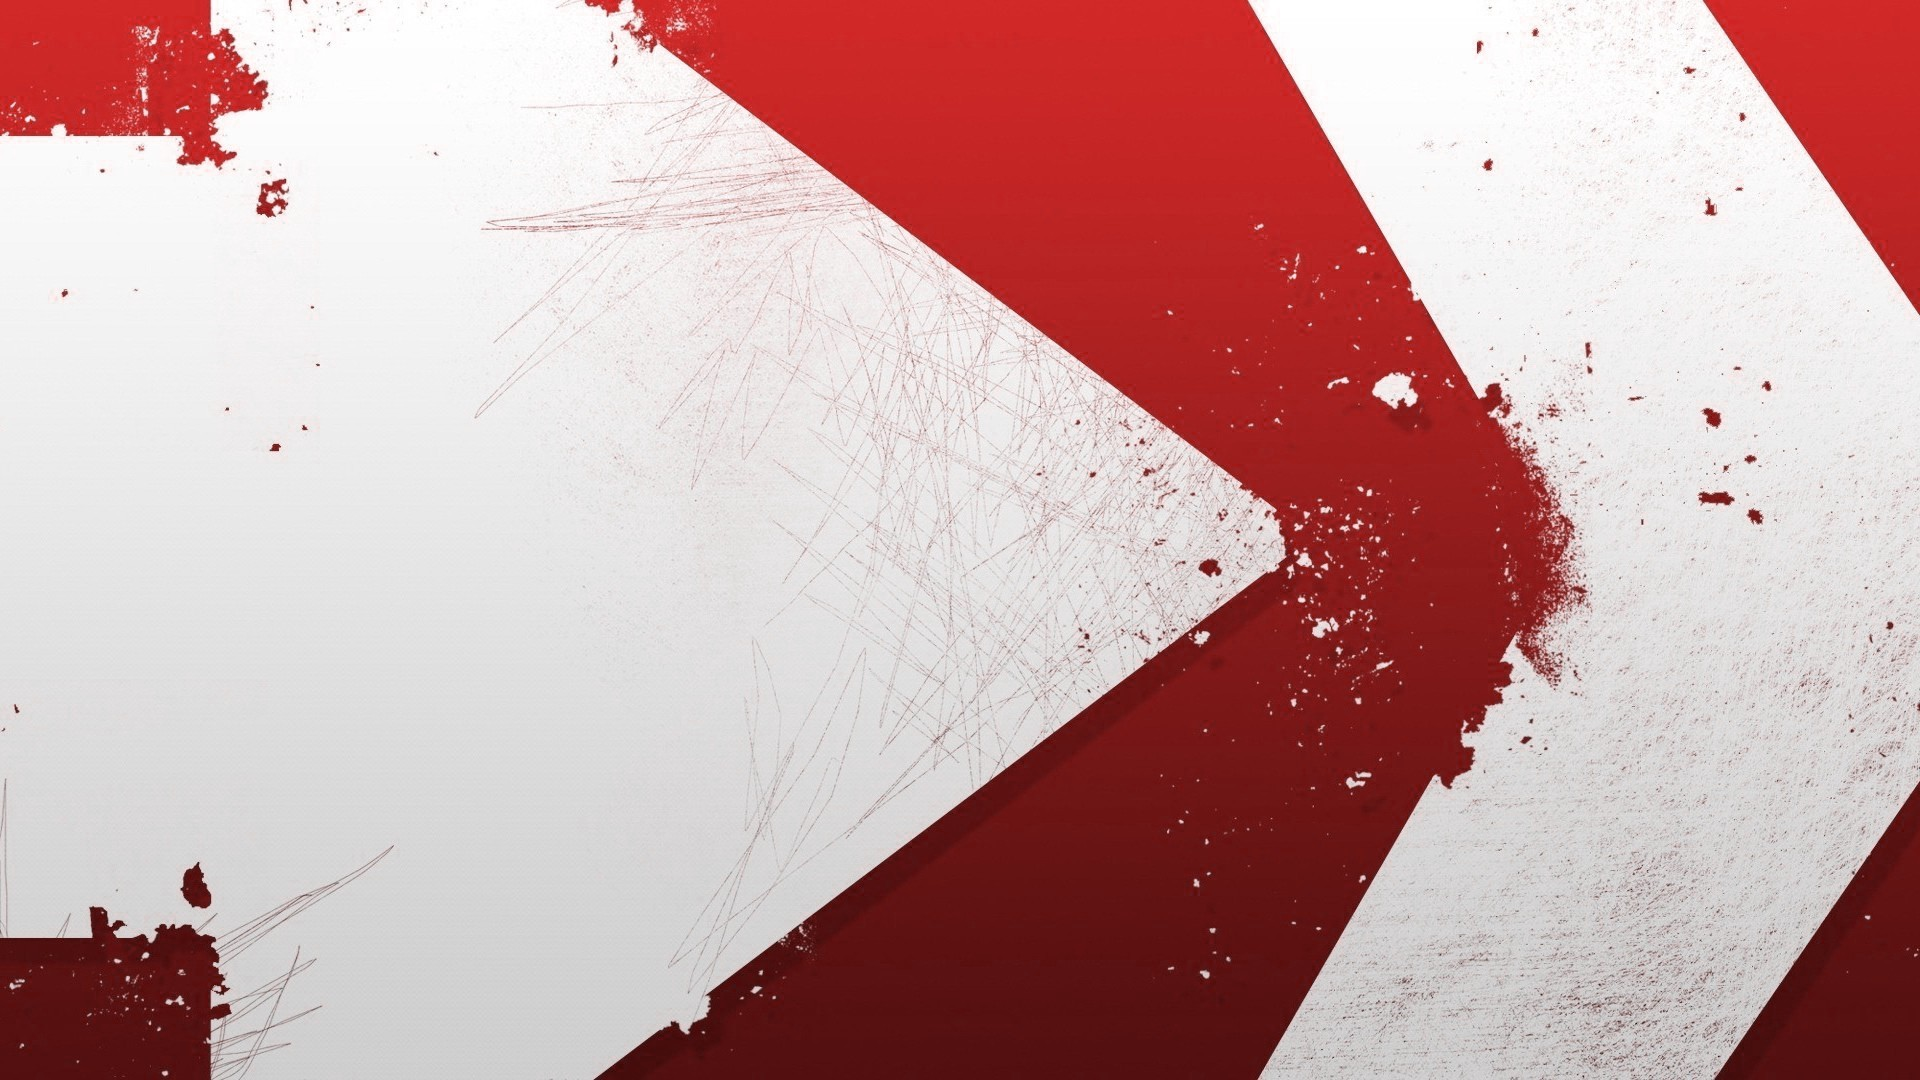 Abstract Red Paint Arrows Exclusive HD Wallpapers 6298 1920x1080